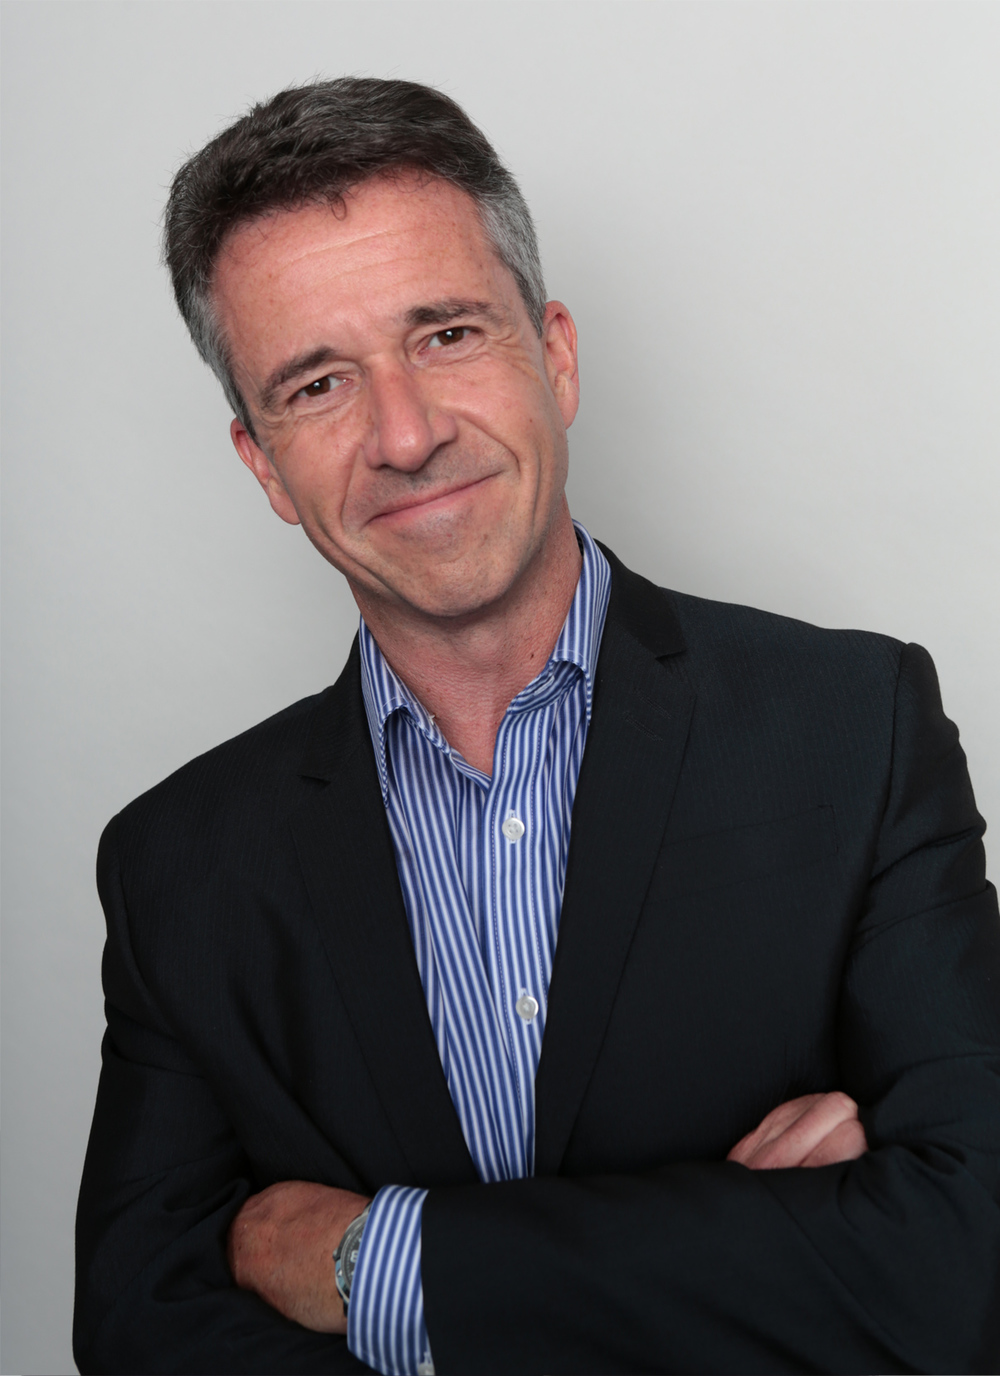 Motivational speaker and male wellbeing expert, David Algeo continues his interview with inspirational speaker, paul mcgee where paul shares his take on worry